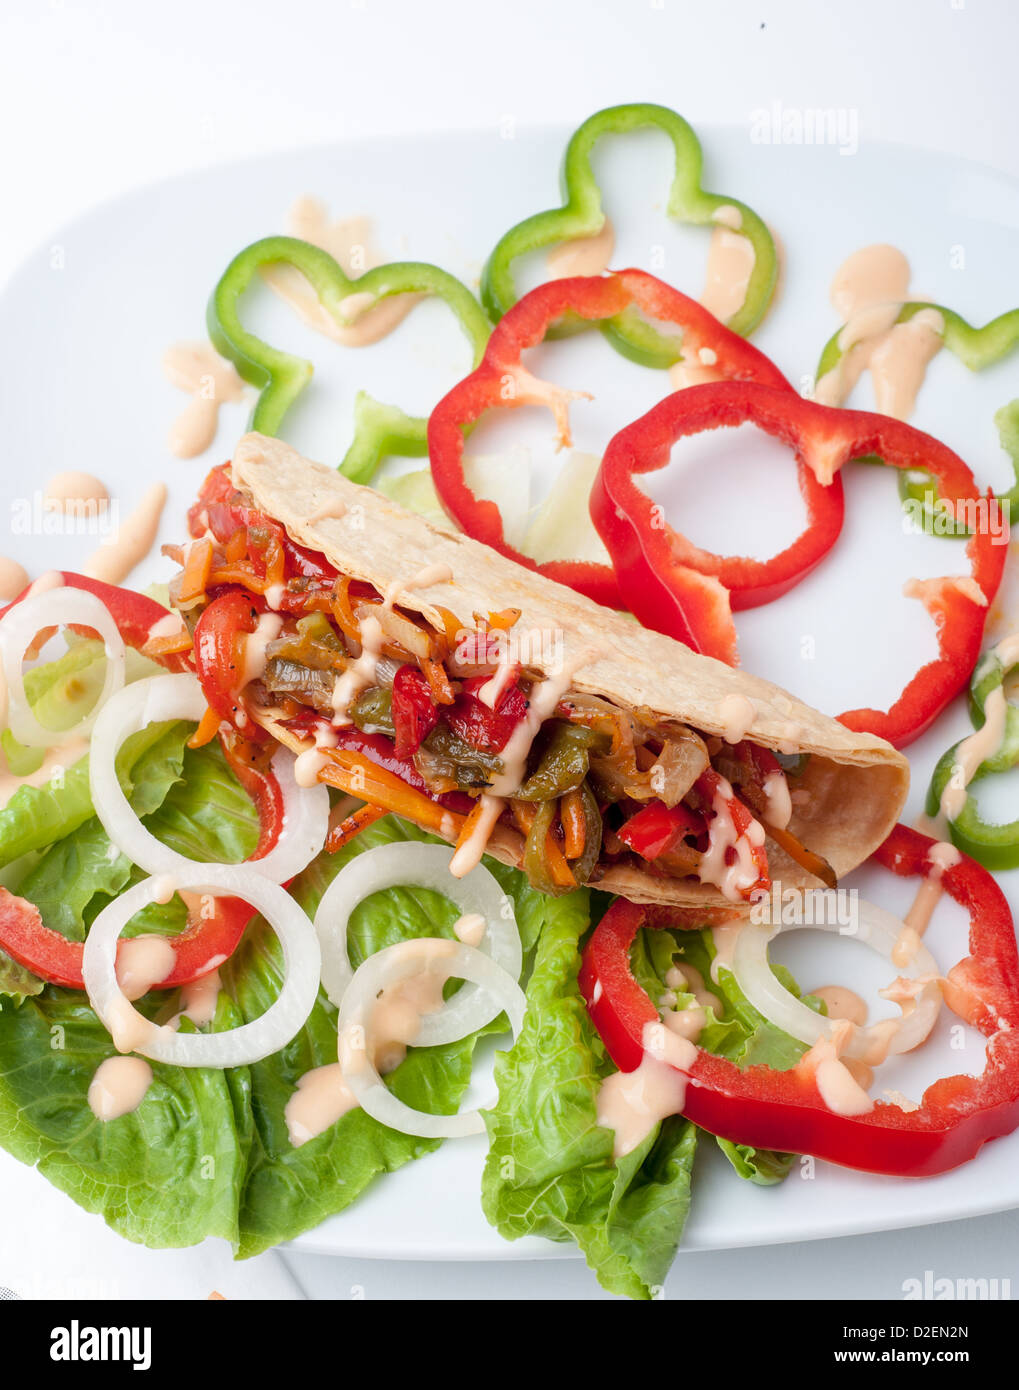 Vegetable Taco sandwich snack - Stock Image